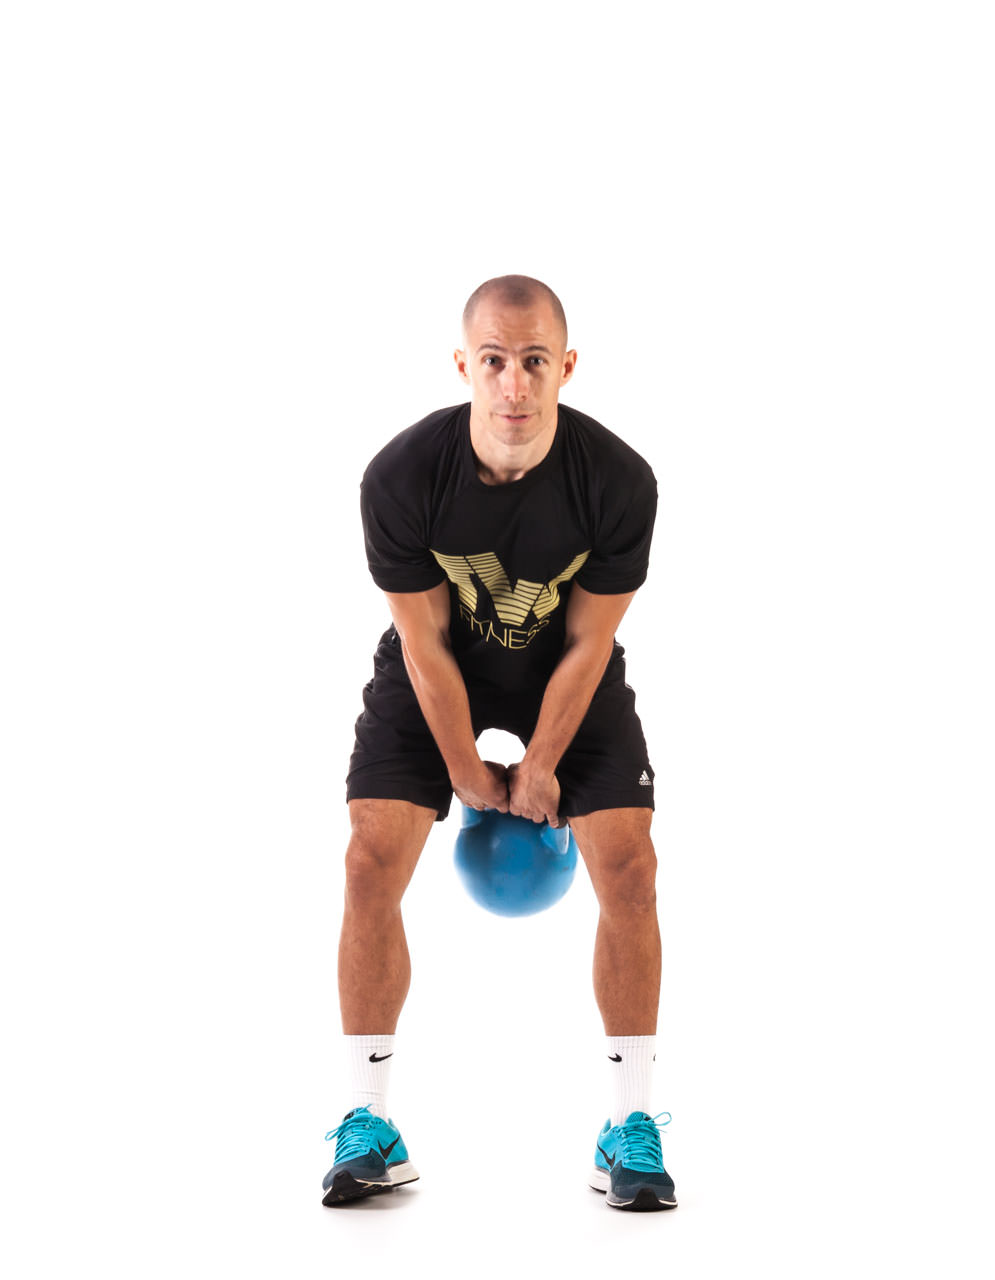 Two-Arm Kettlebell Swing frame #2